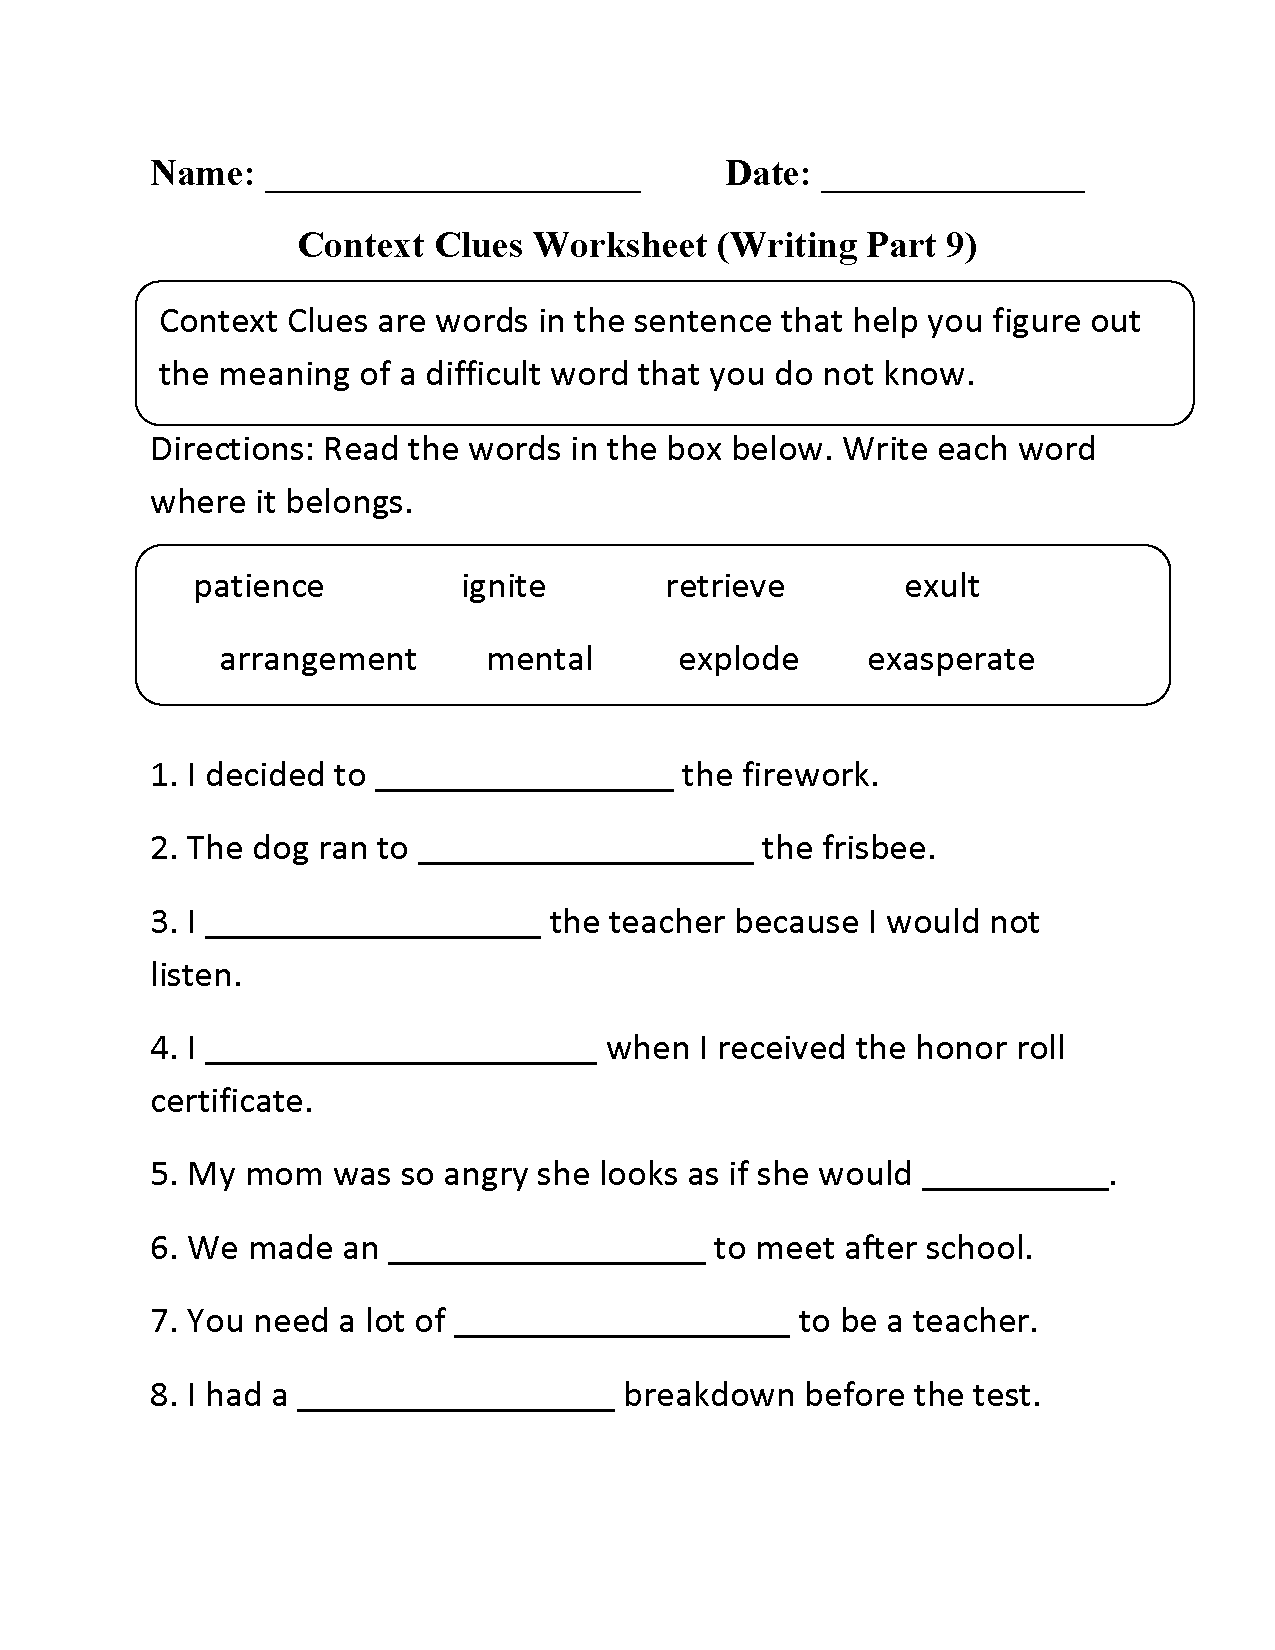 Worksheets English 9 Worksheets context clues worksheet writing part 9 intermediate language intermediate